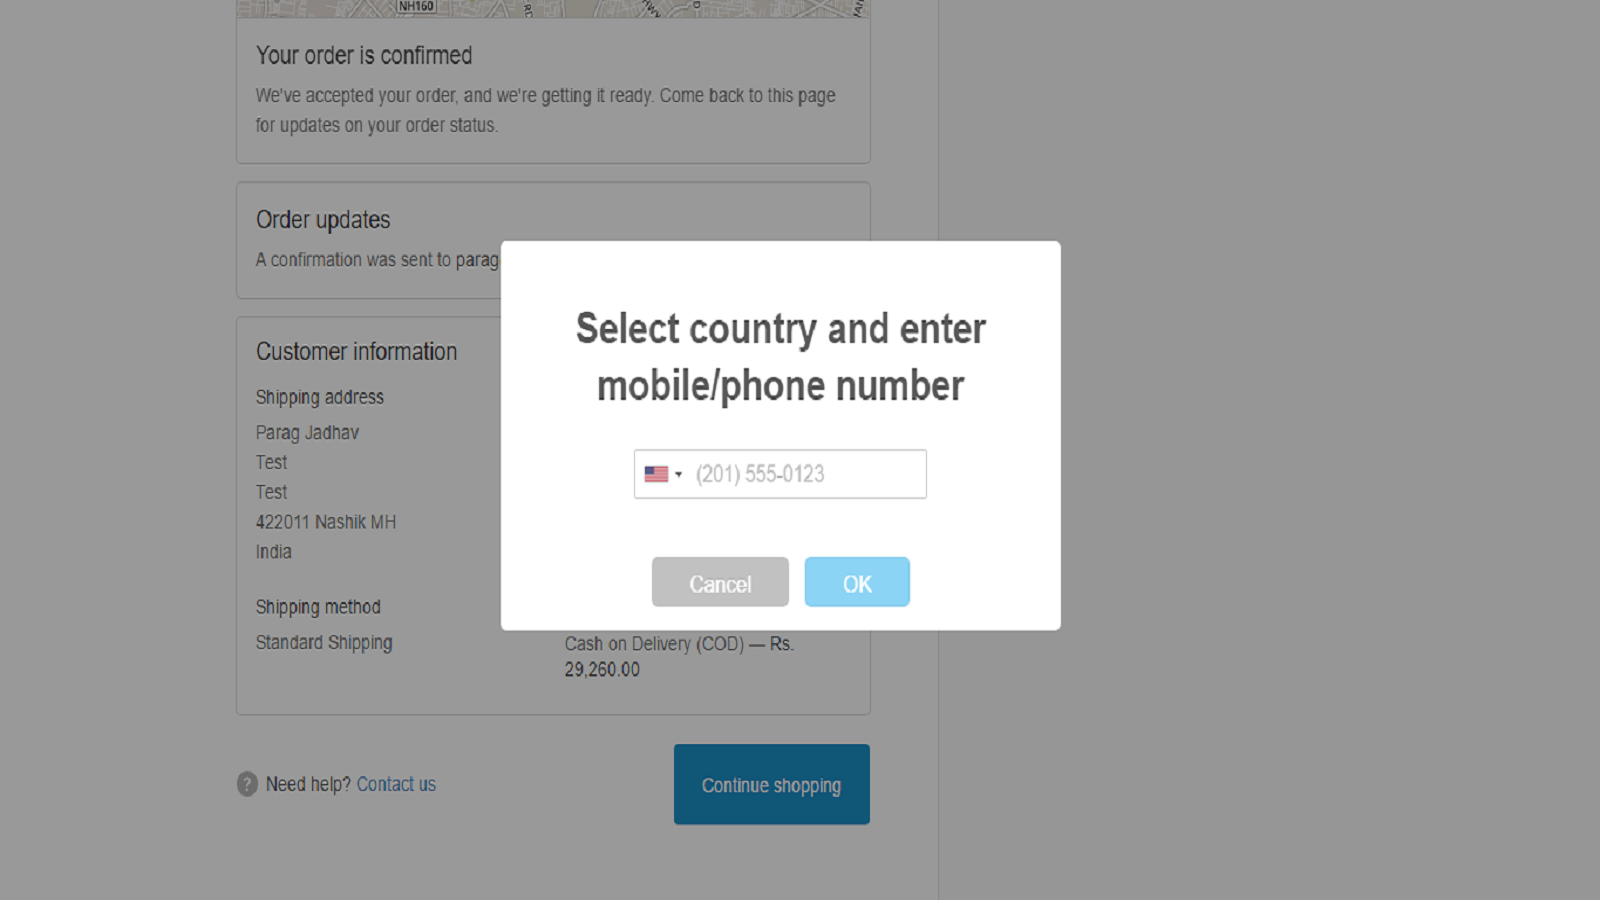 Select country and input customer number